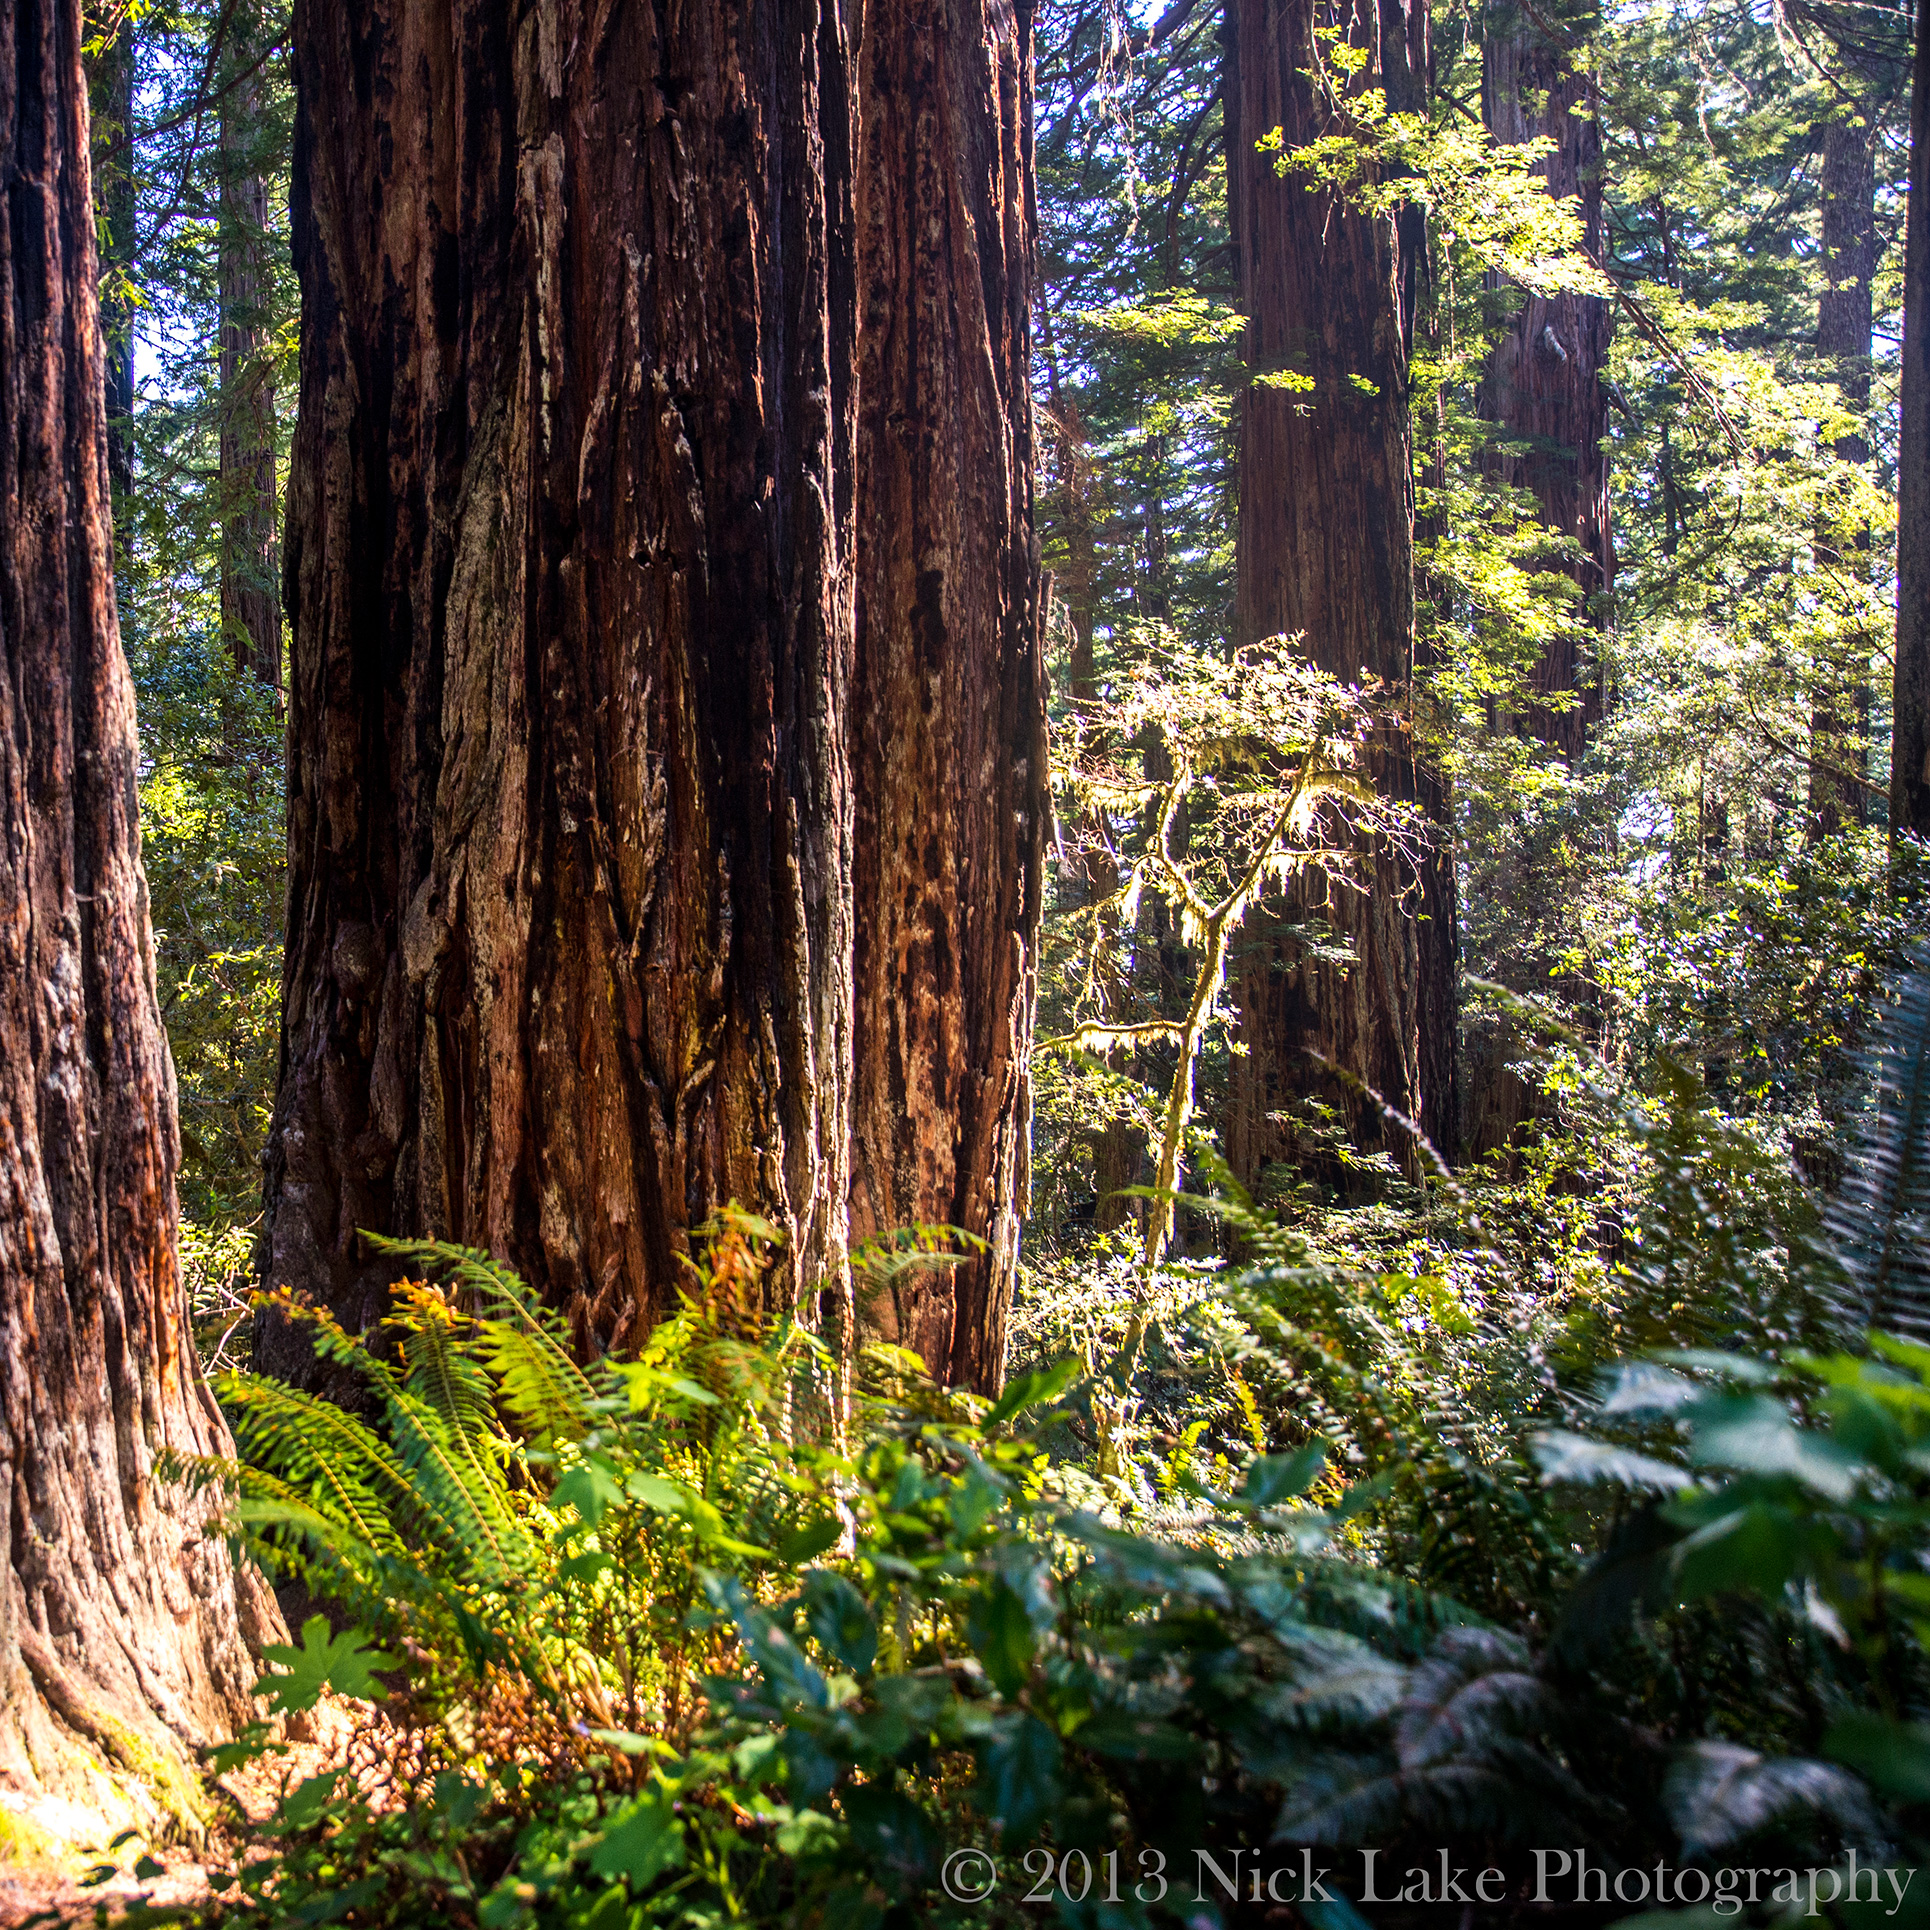 Often shrouded in thick fog, we were able to photograph the Redwoods lit by filtered sunshine